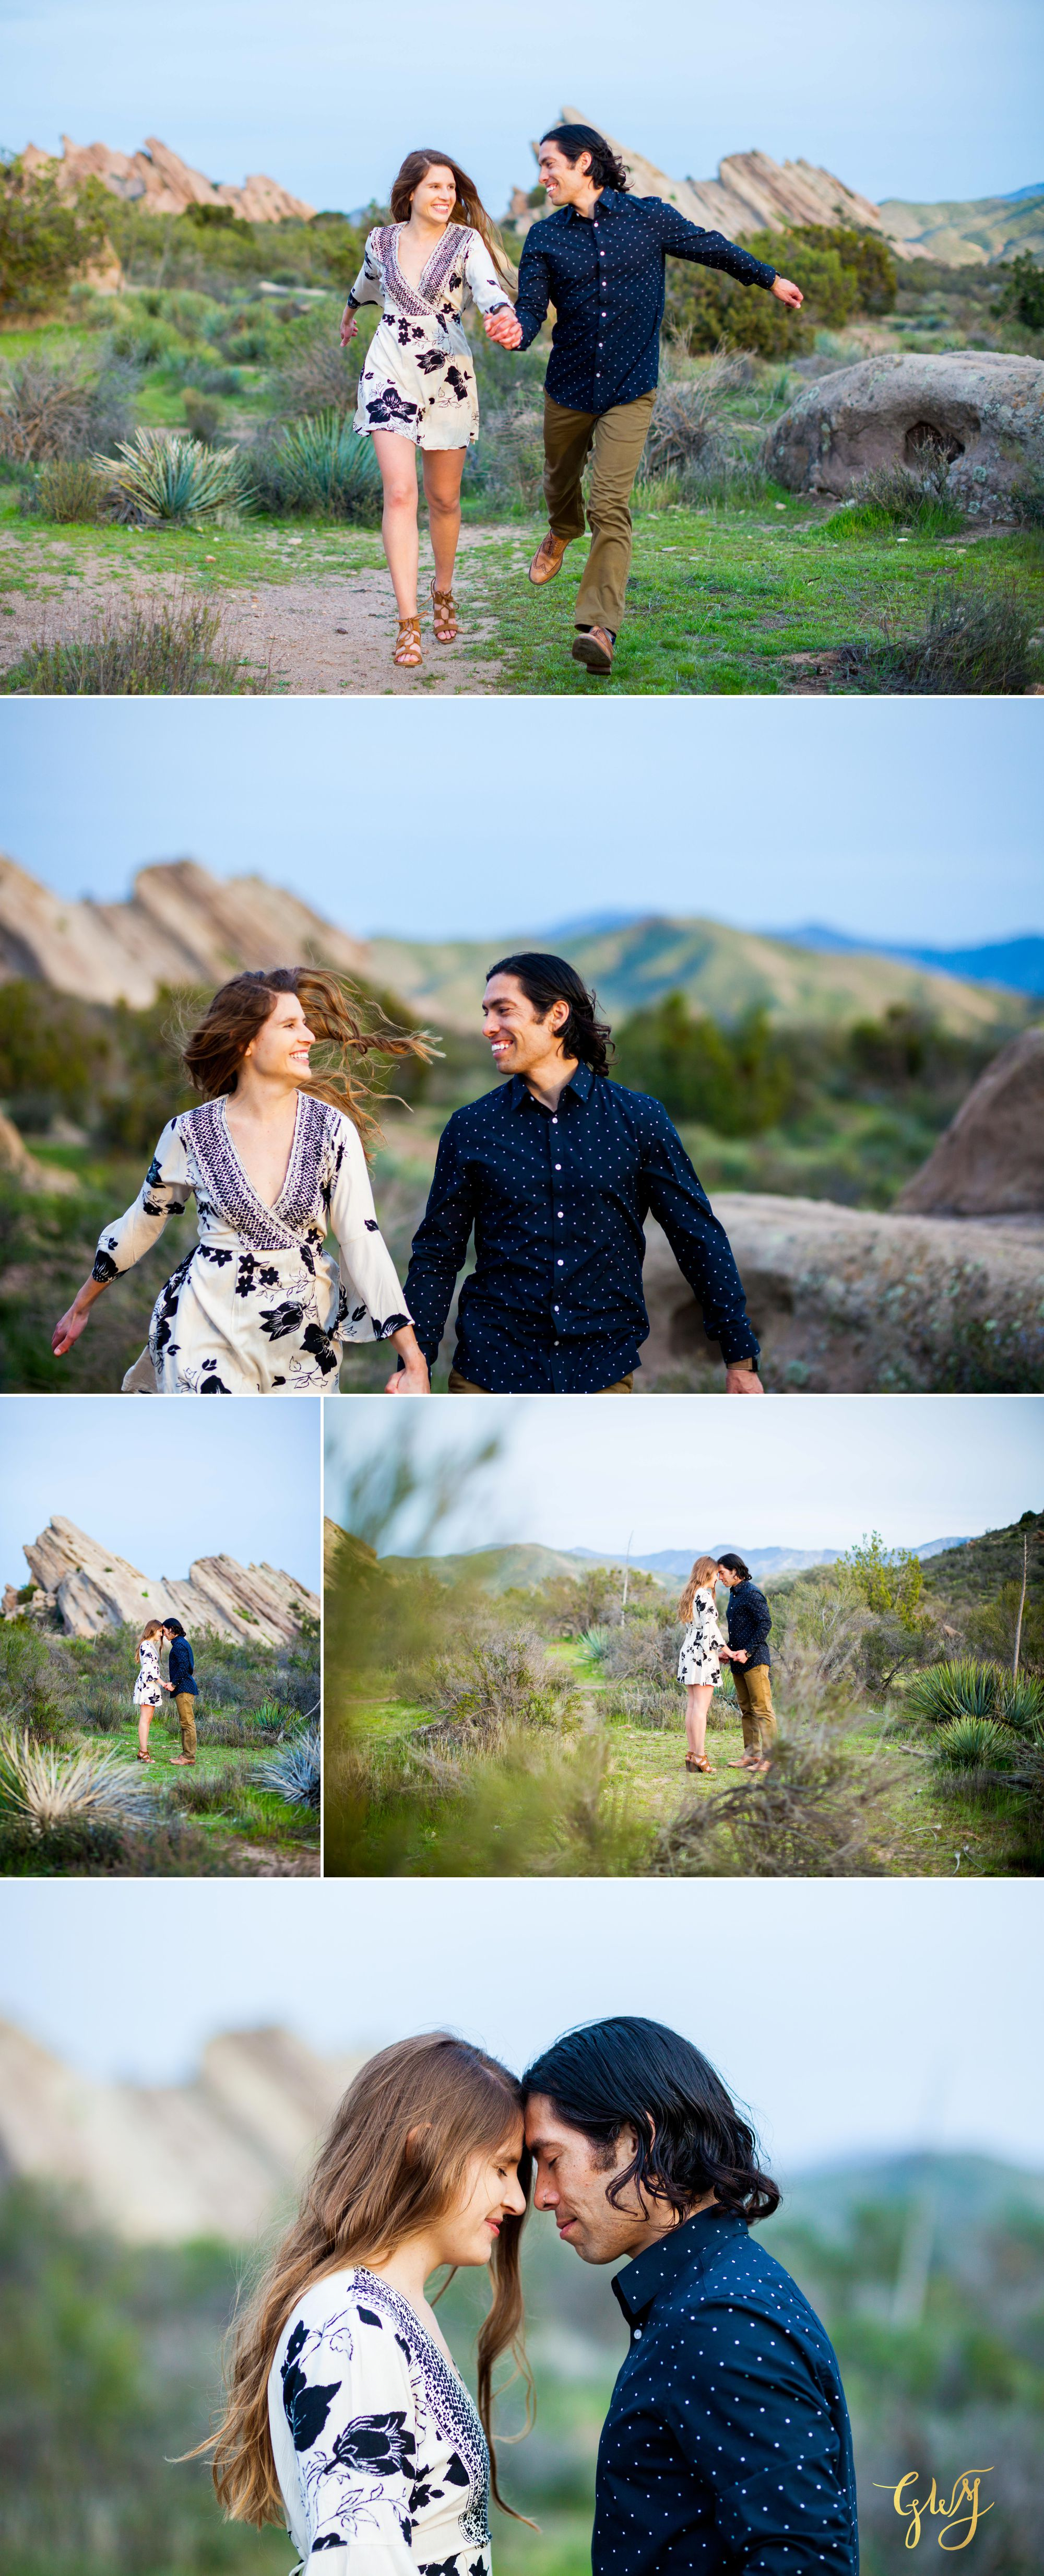 Jose + Sarah Vasquez Rocks Hike at Sunset Adventurous Engagement by Glass Woods Media 16.jpg